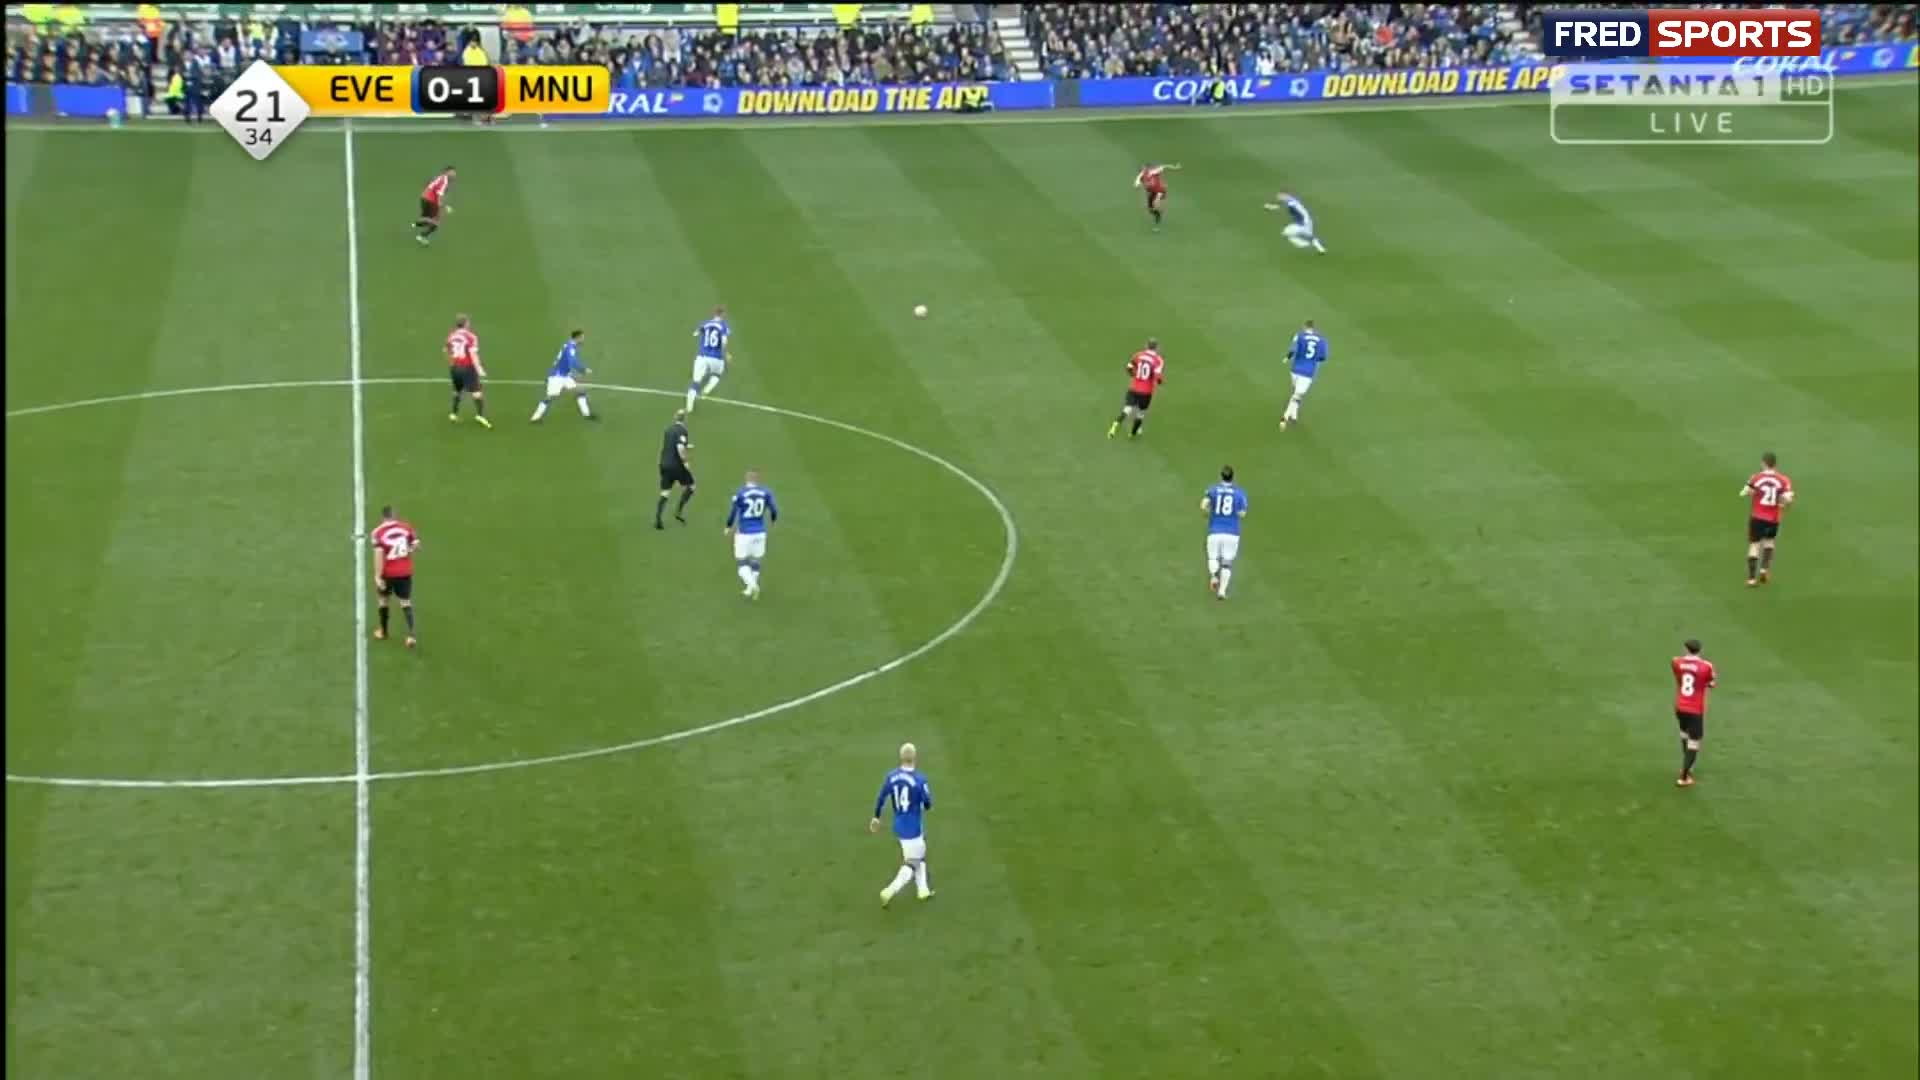 Herrera scores to make it Everton 0 - 2 M Utd - video